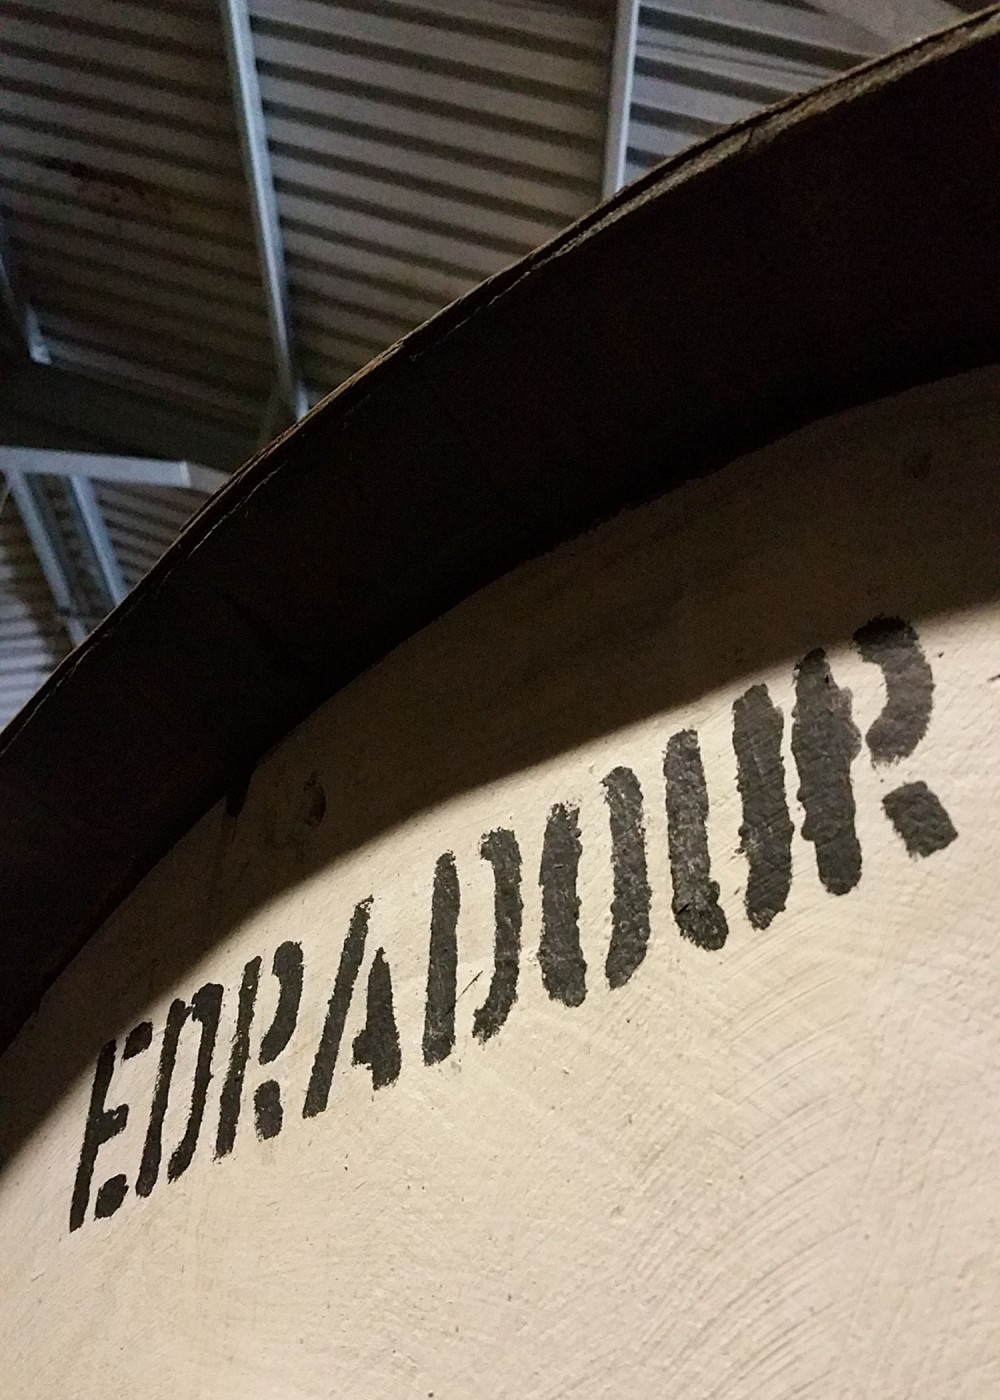 edradour-distillery-scotland-whiskyspeller-scotland-2016-39